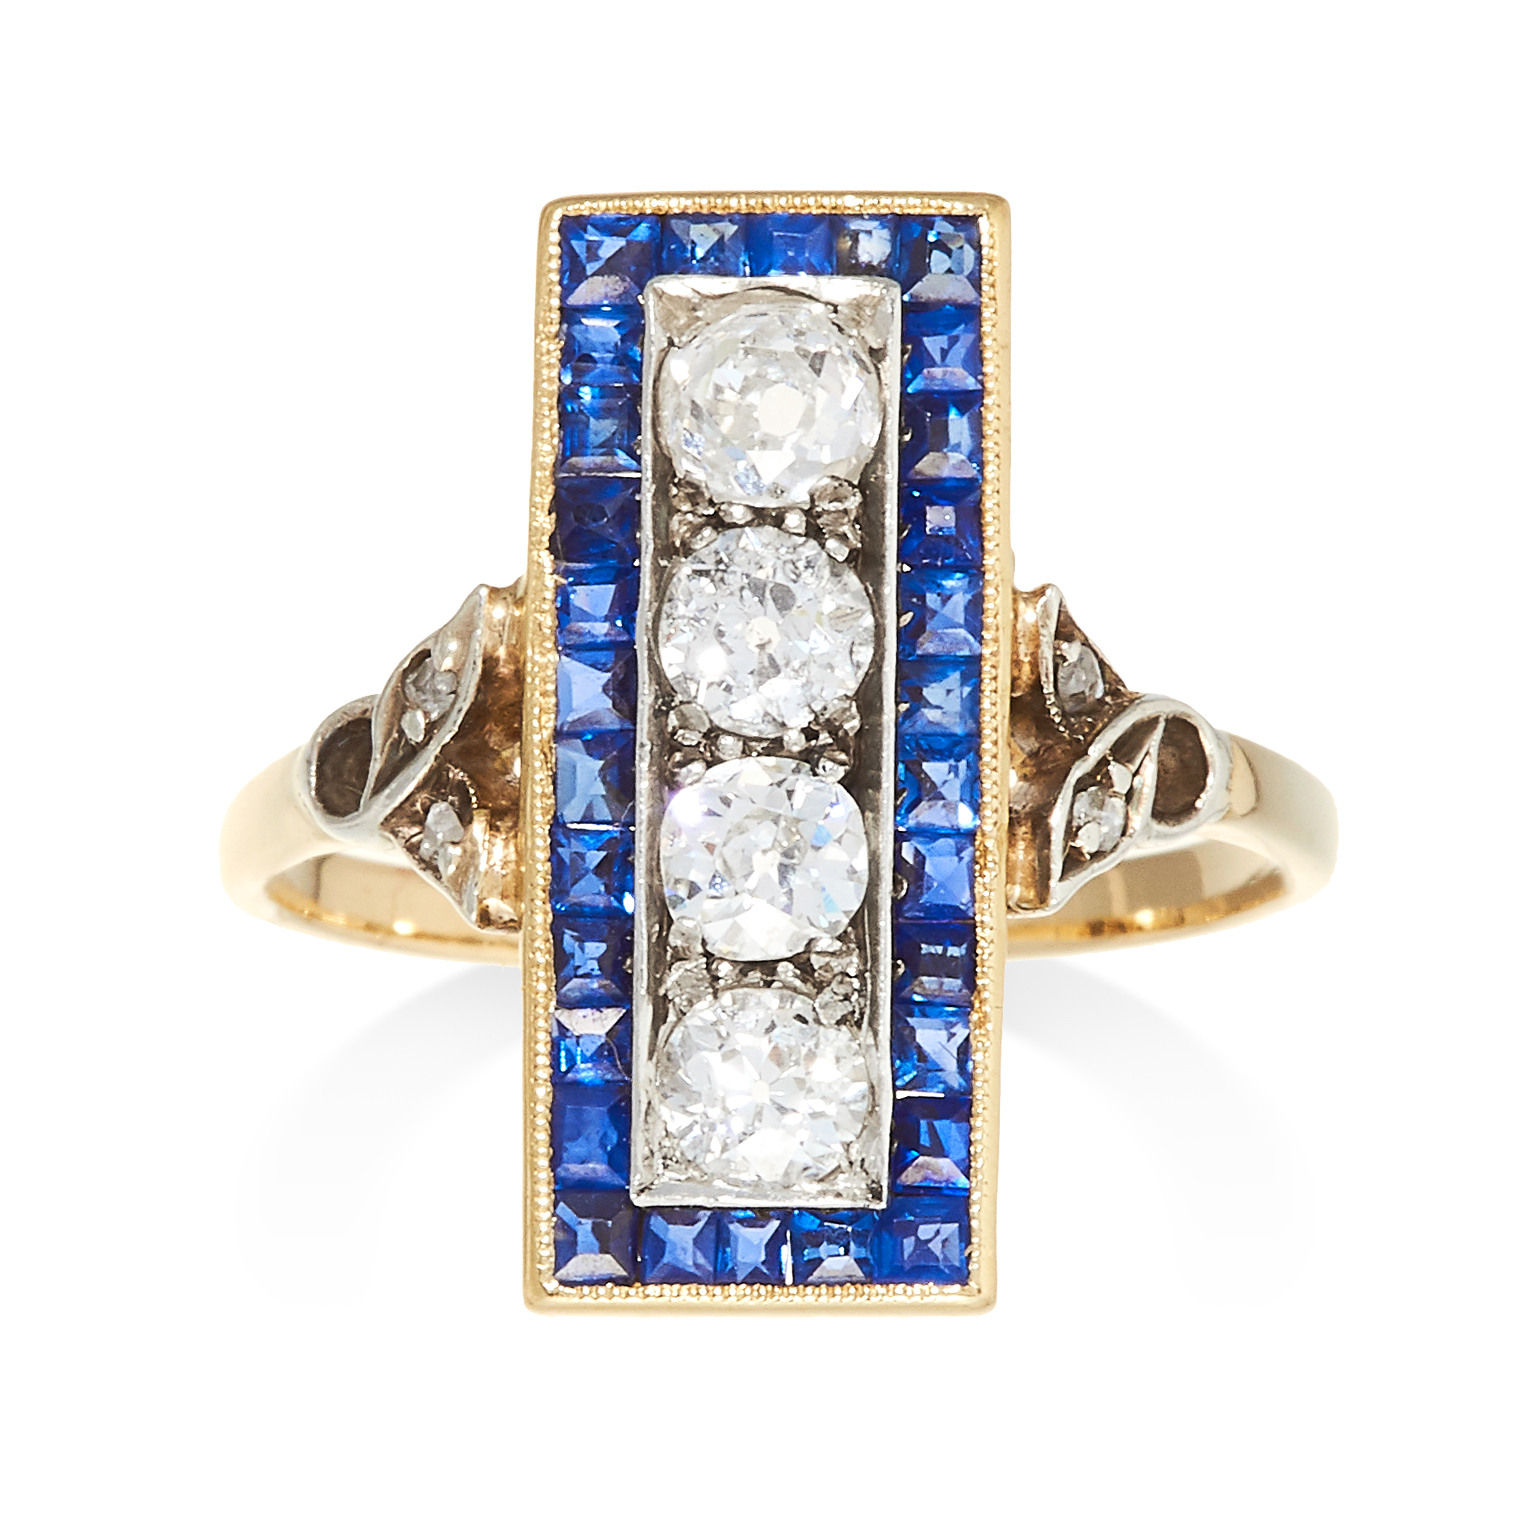 AN ART DECO SAPPHIRE AND DIAMOND RING in high carat yellow gold, comprising of a rectangular face